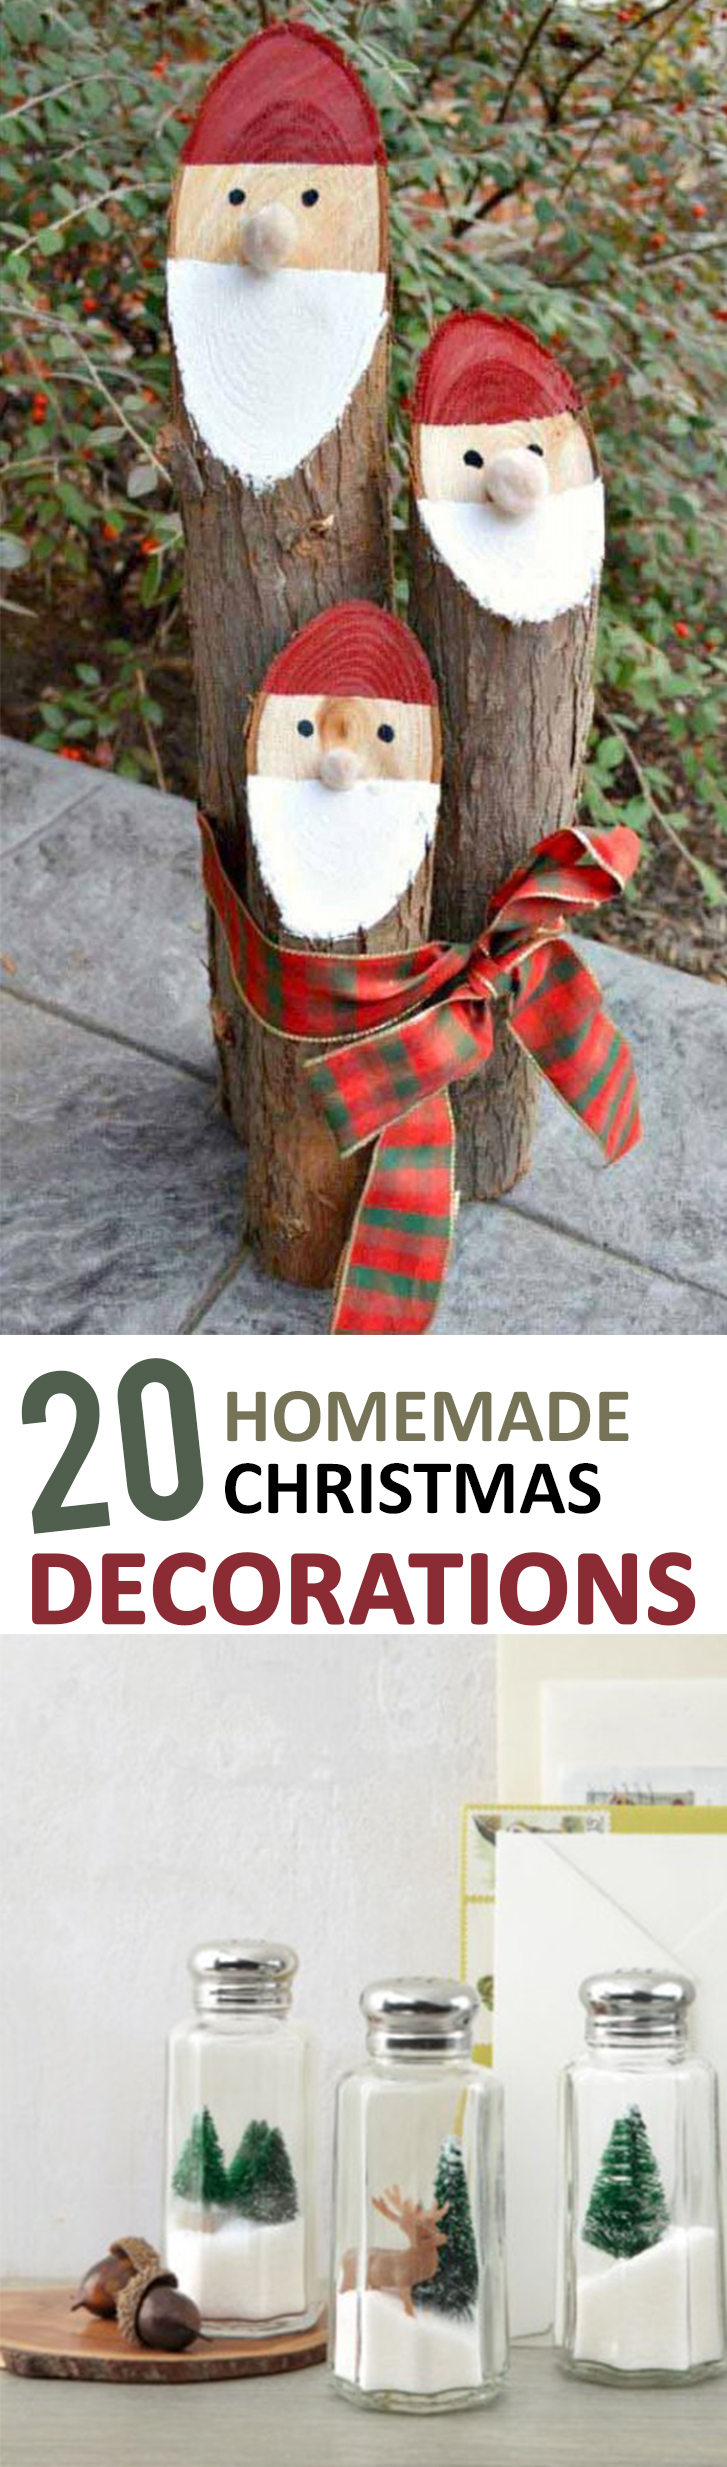 Christmas, Christmas decorations, DIY Christmas decorations, home decor, easy holiday decor, holiday decorating hacks, popular pin, DIY home decor